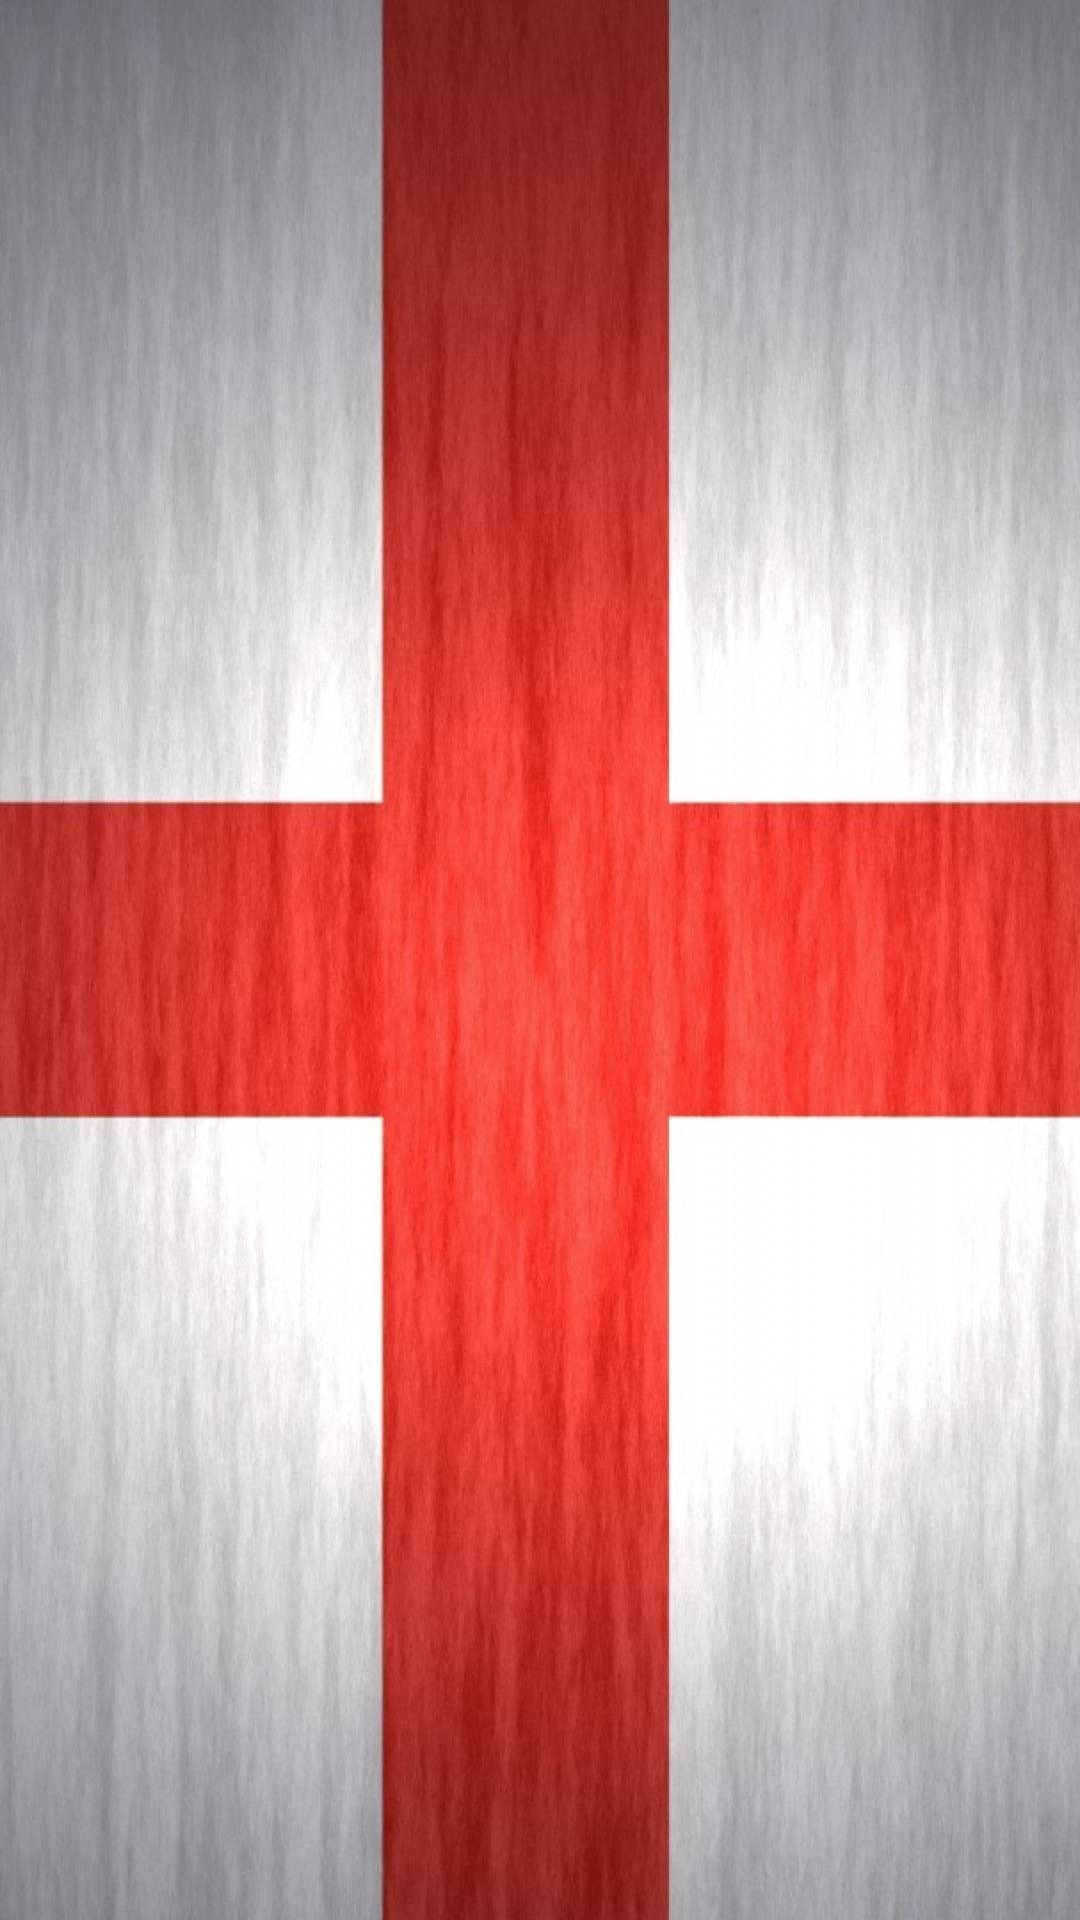 England St George Flag Wallpaper In 2020 England Flag Wallpaper England Flag Phone Wallpaper For Men